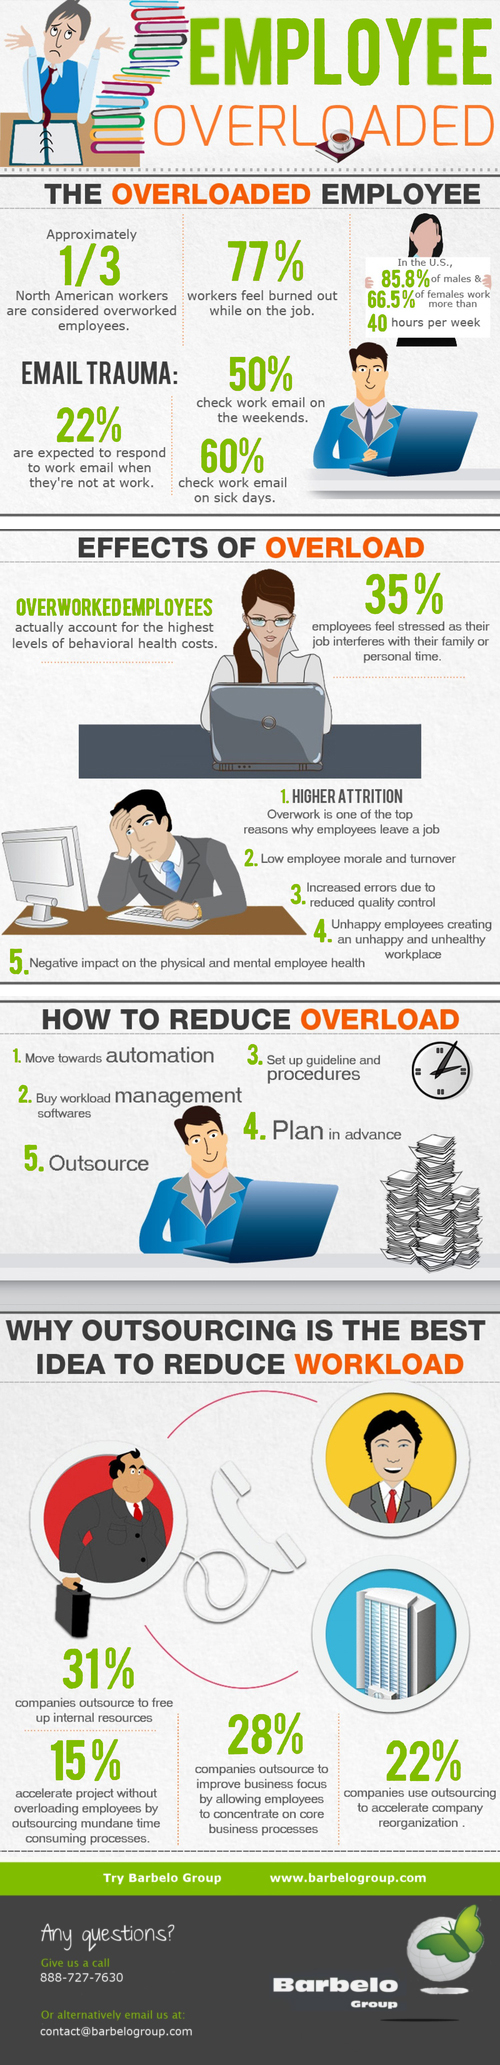 """Employee Overloaded"" How Overworked Employees Can Impact Your Business' Bottom Line via @Barbelo_Group"